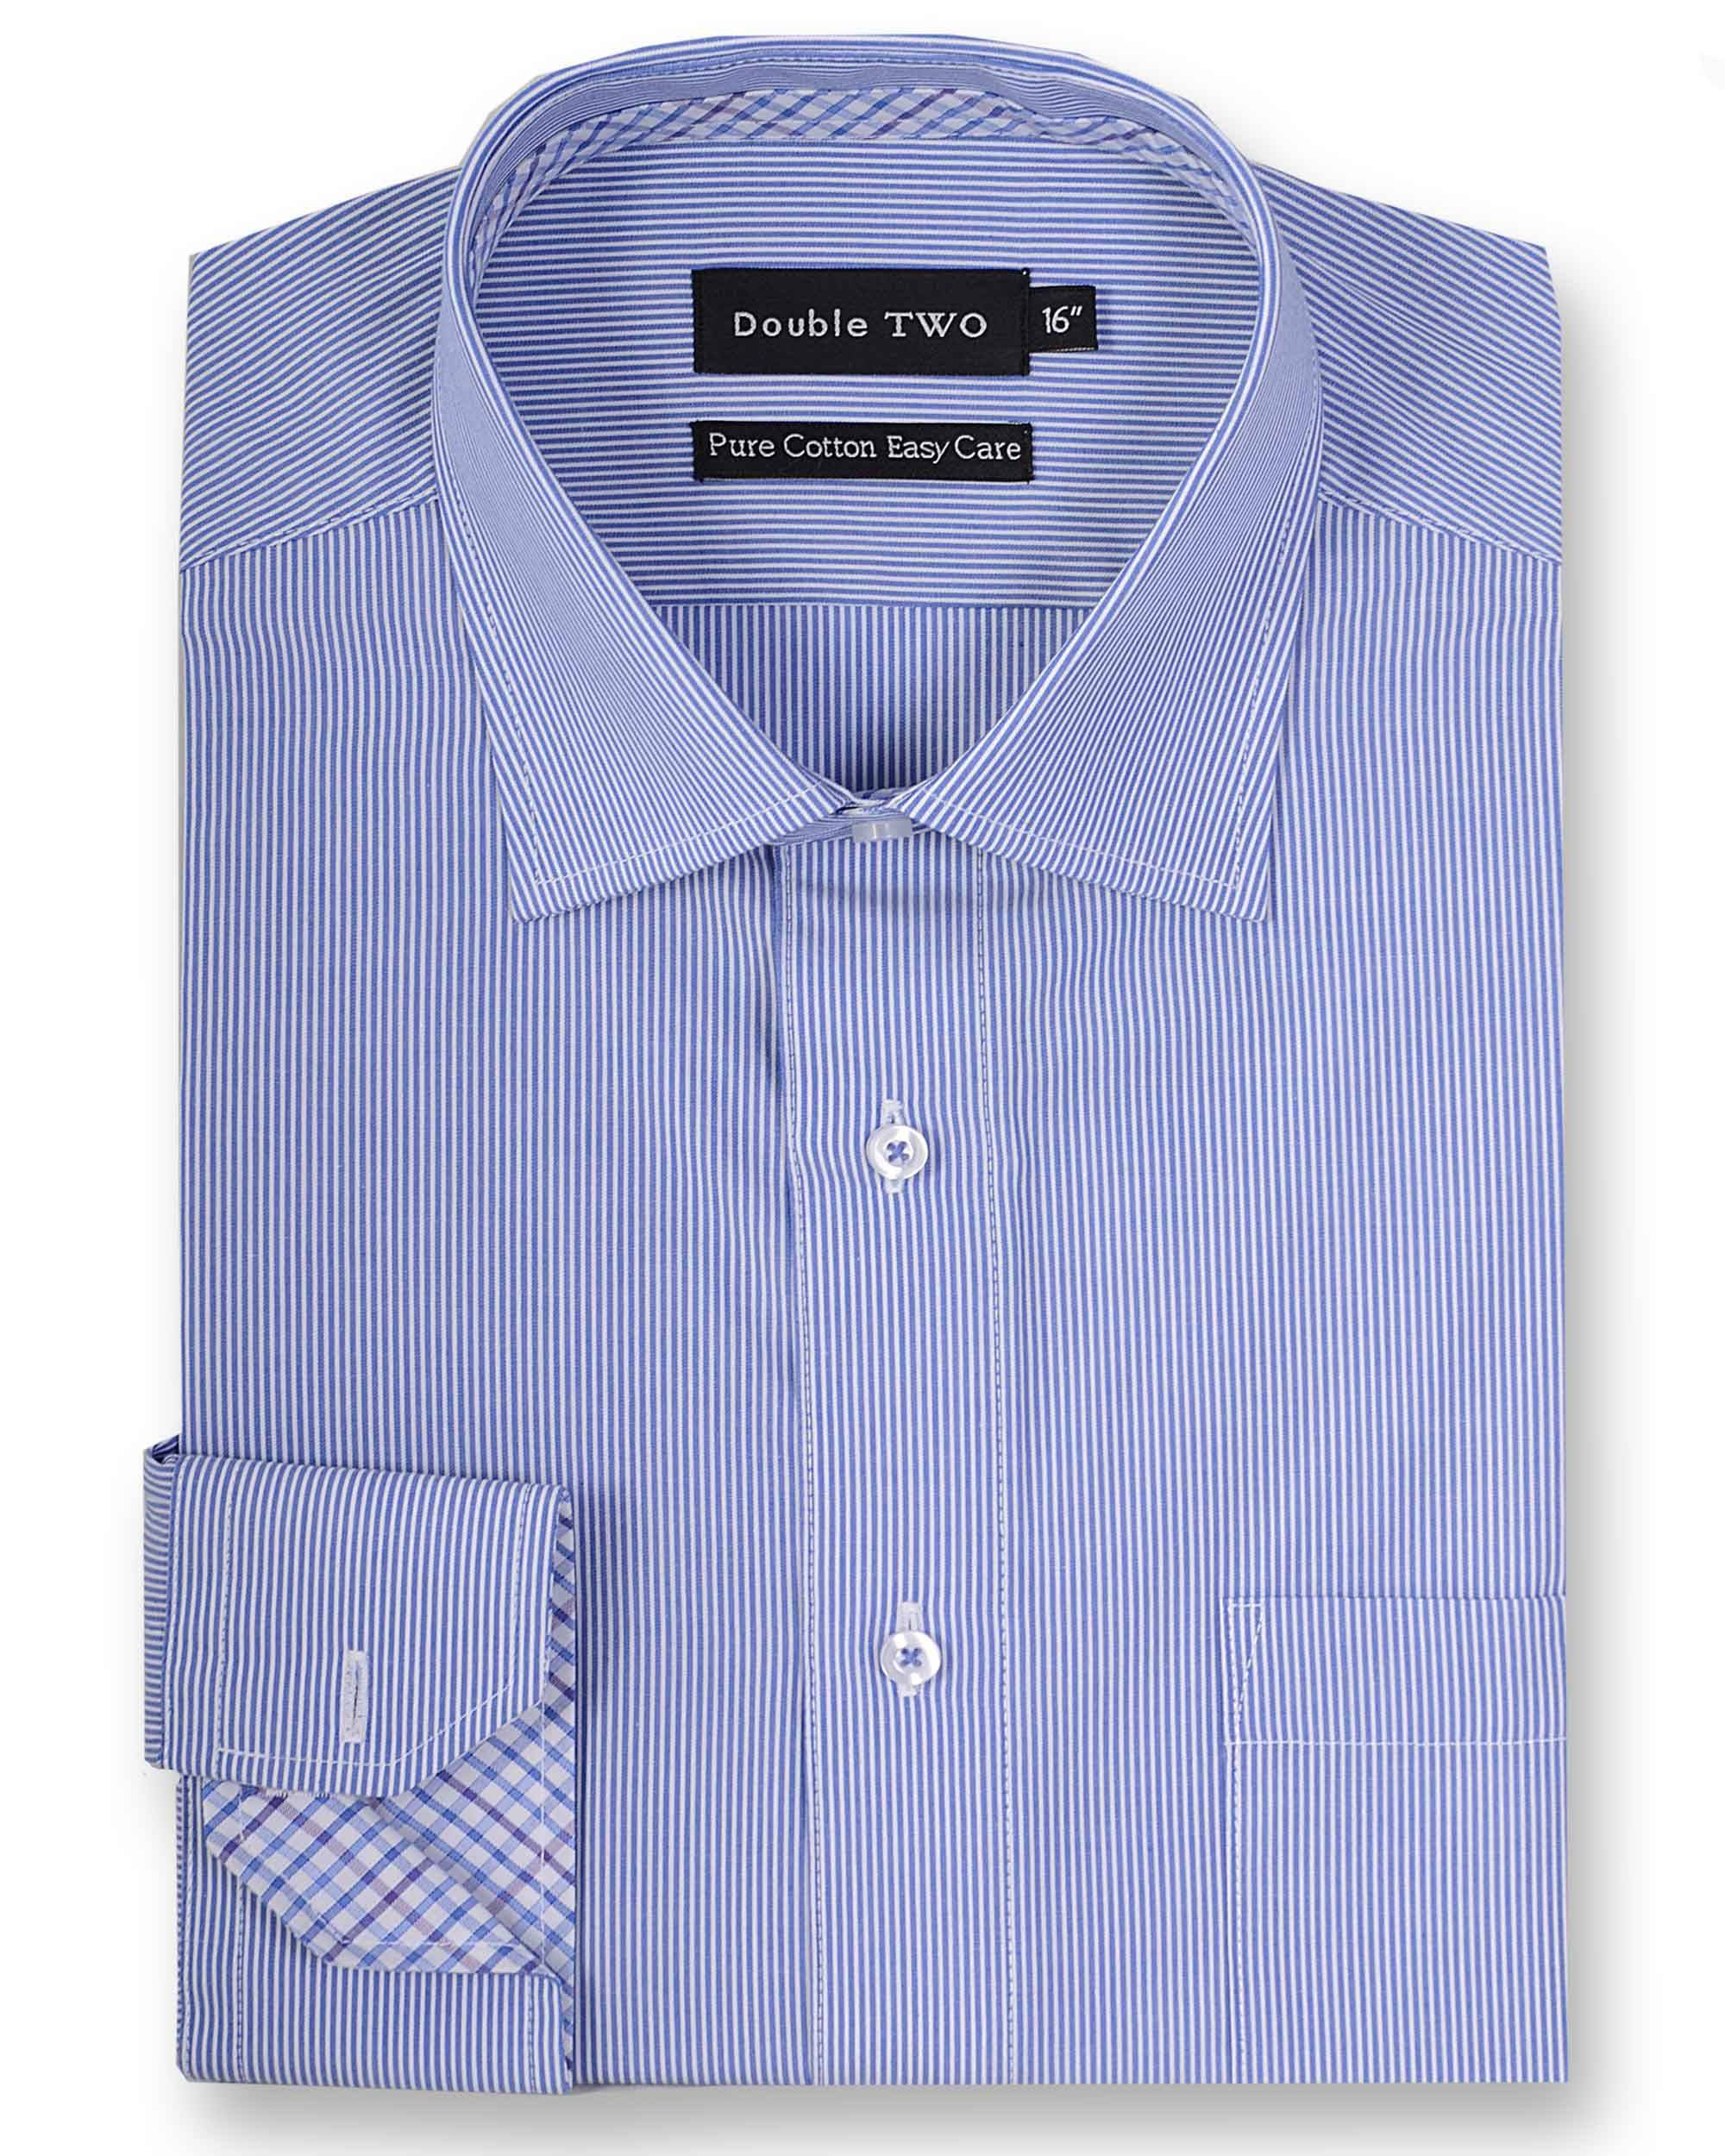 Double TWO Men's Double TWO King Size Stripe Contrast Formal Shirt (19)